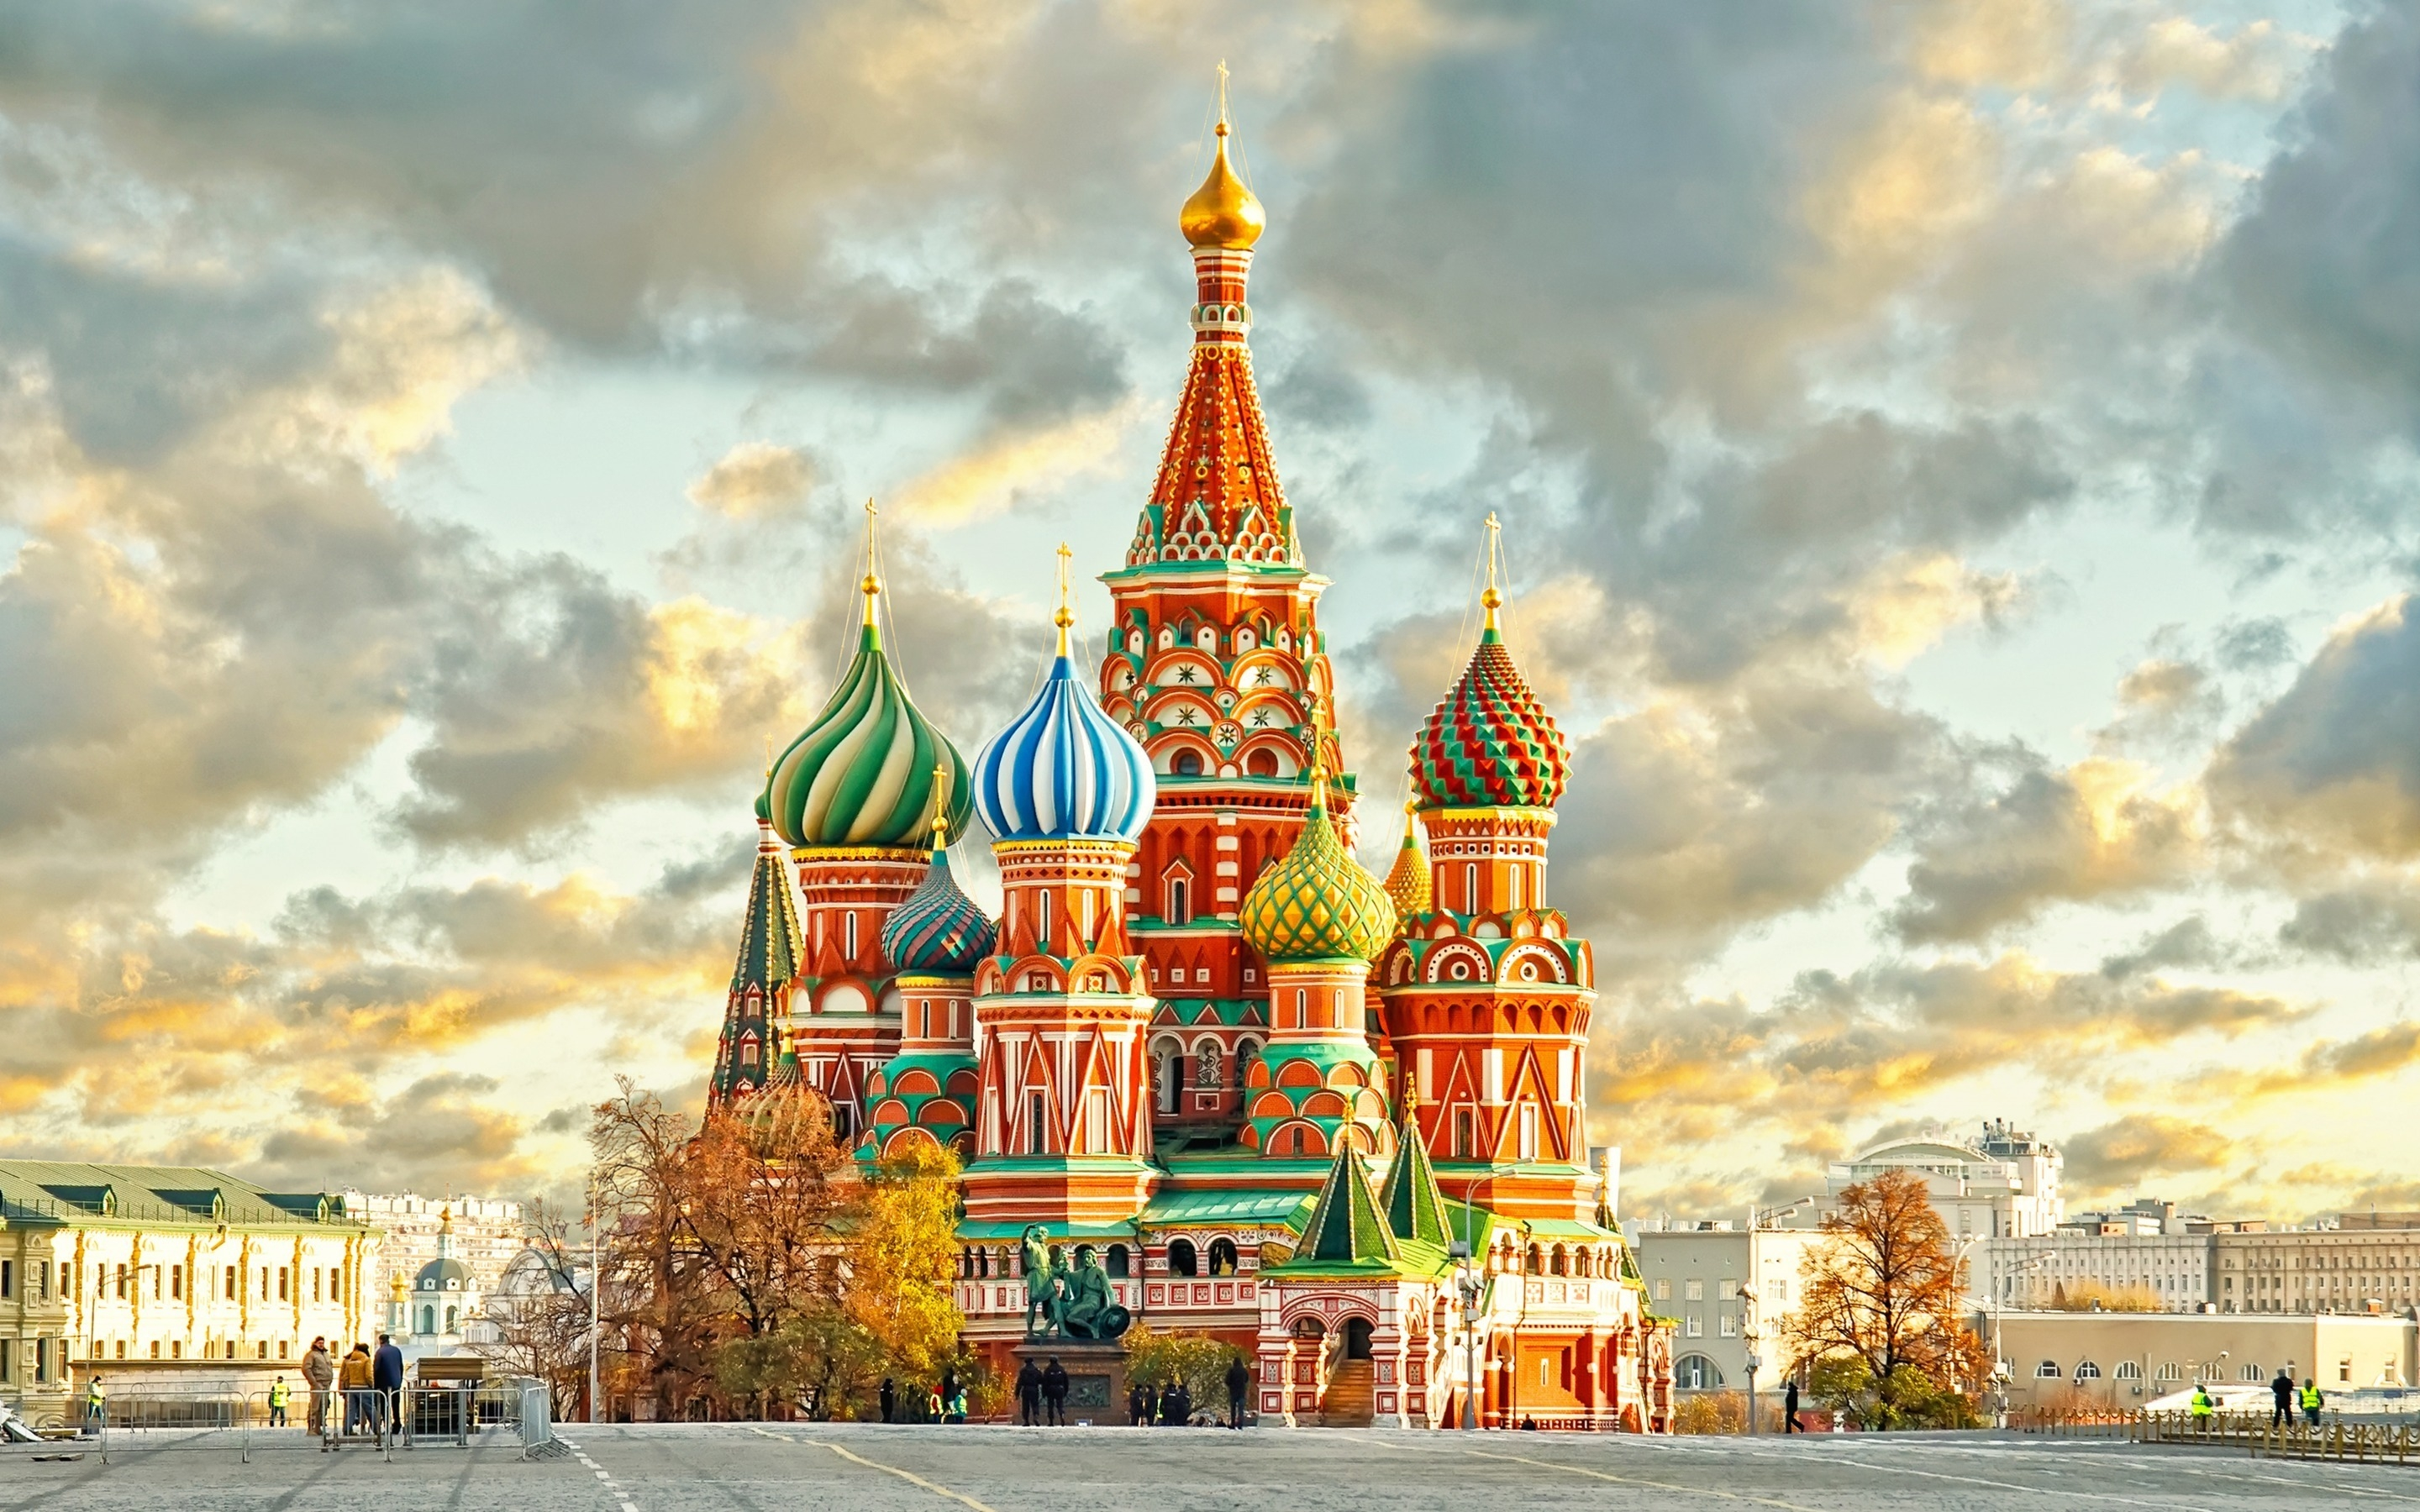 Russia wallpaper Wallpapers High Quality | Download Free